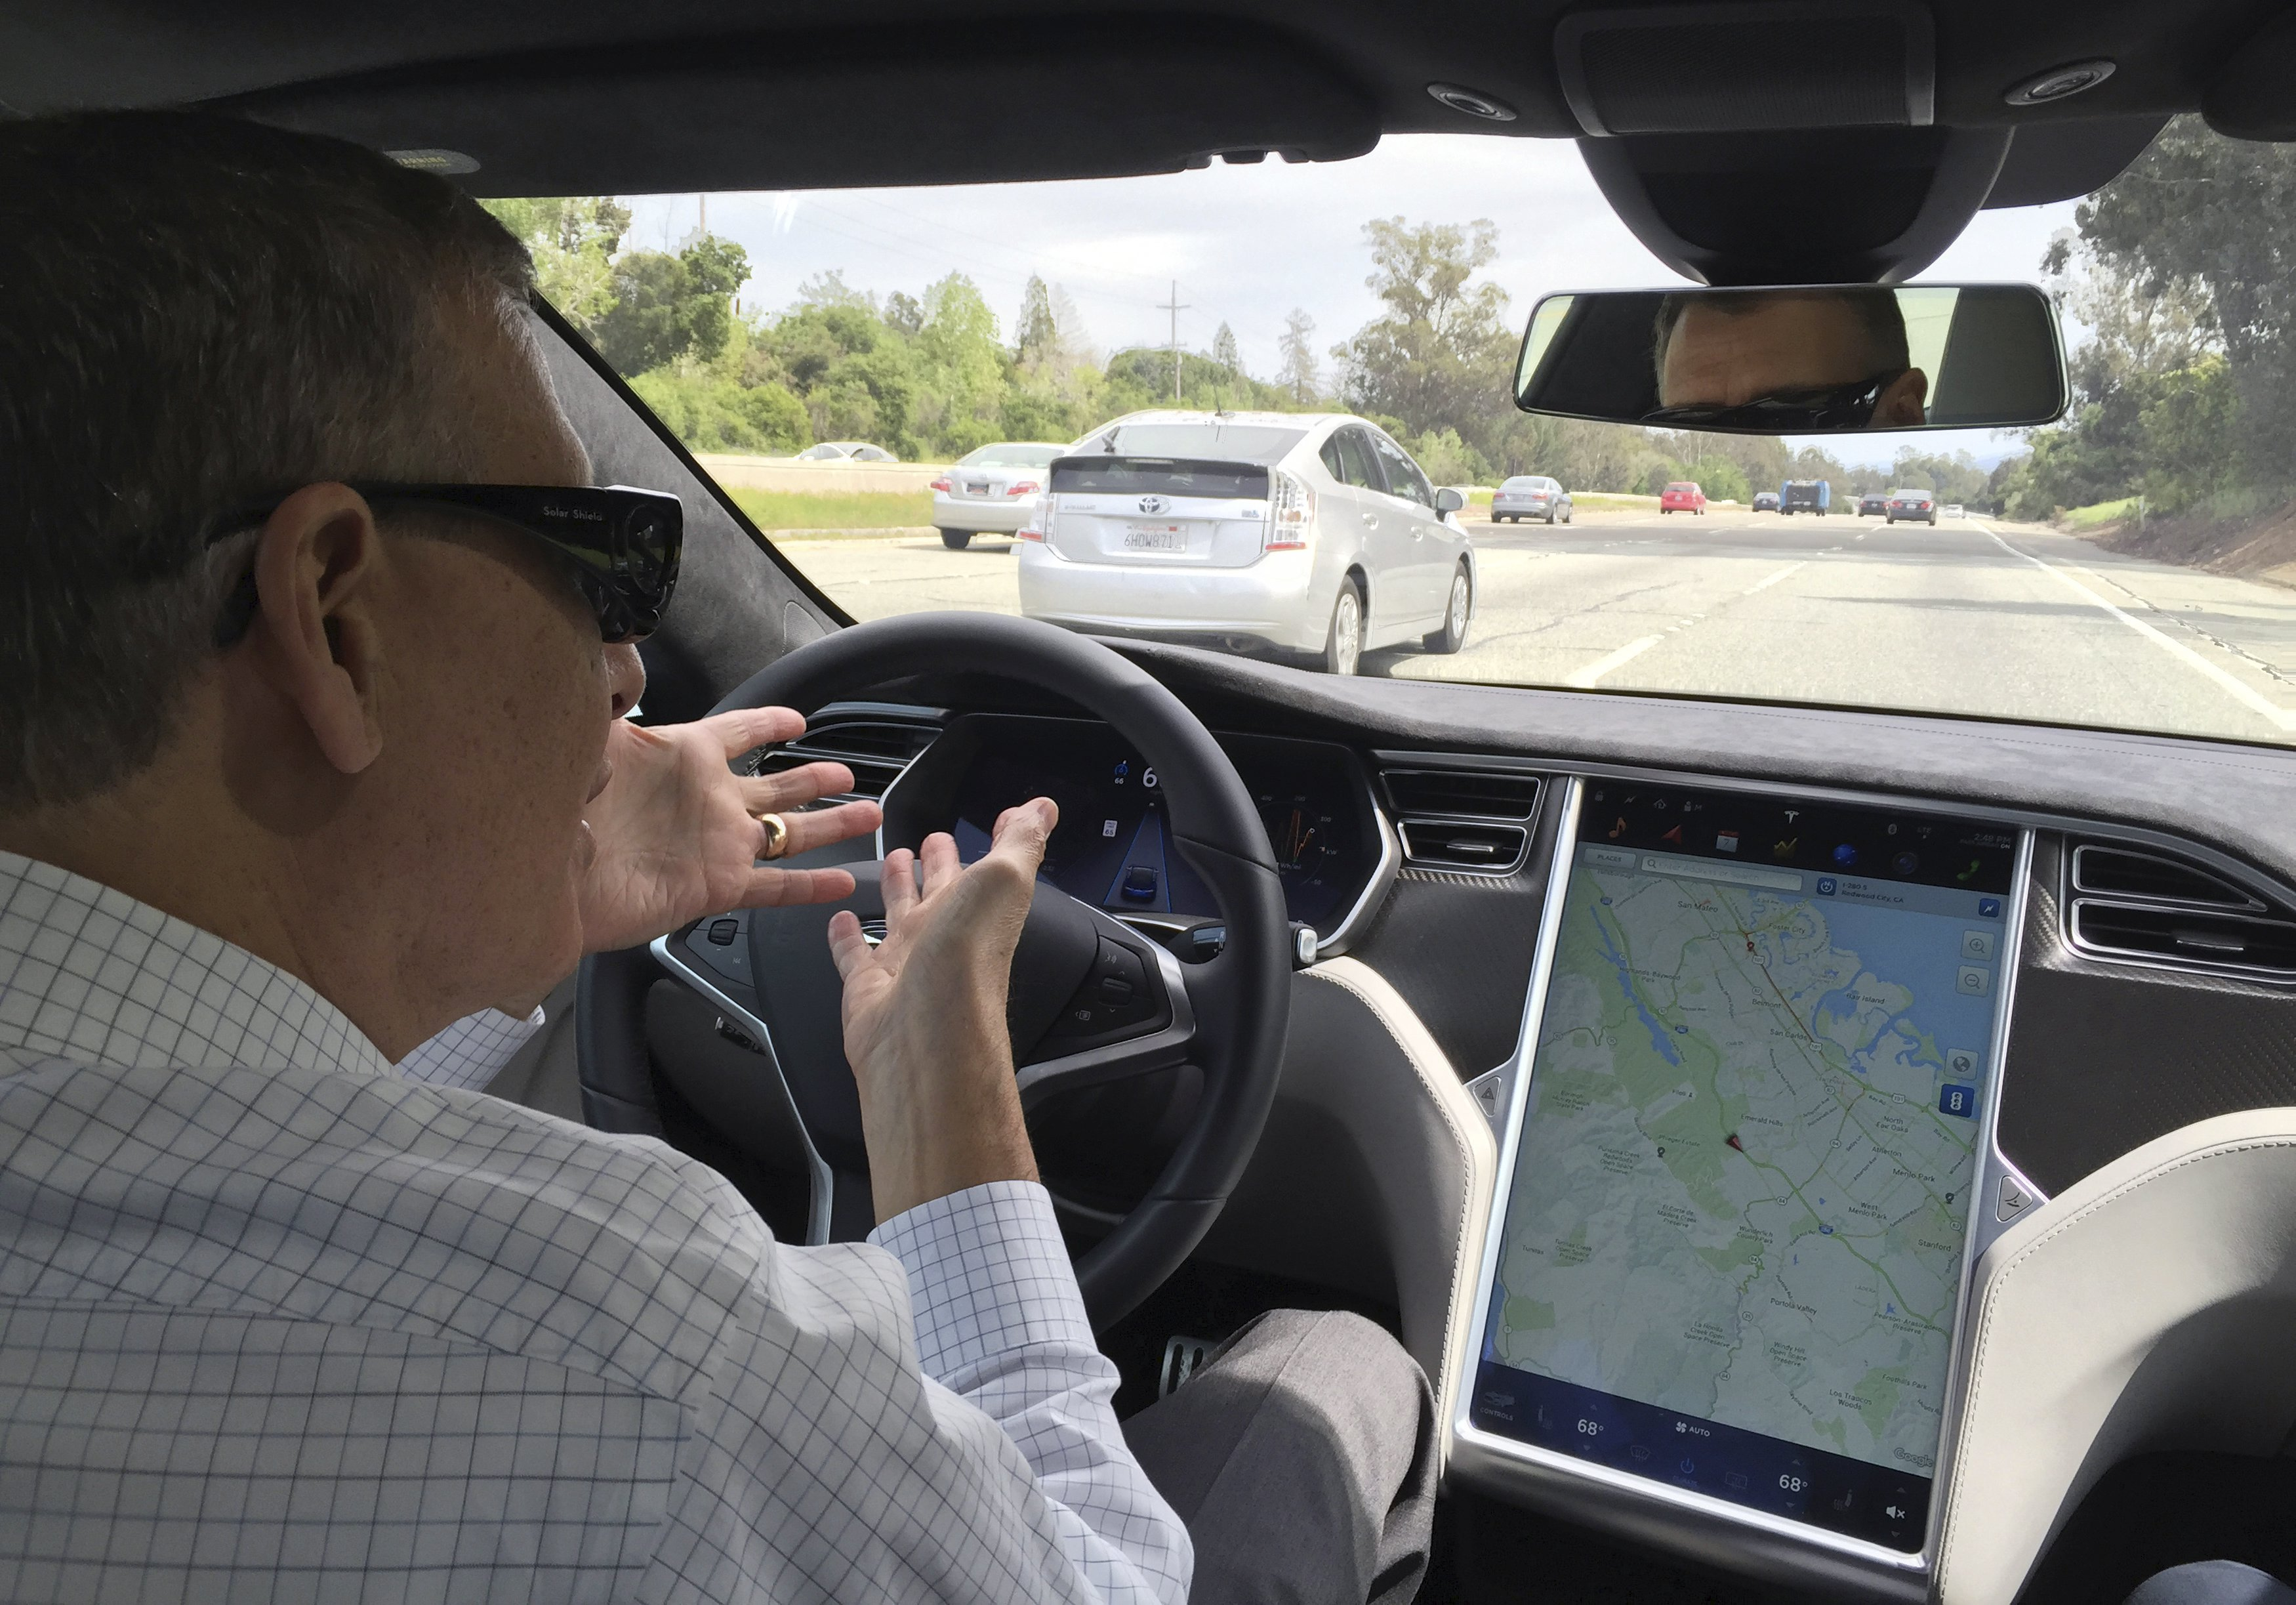 Reuters journalist Paul Ingrassia sits in the drivers seat of a Tesla S-Type in Autopilot mode in San Francisco, California, U.S., April 7, 2016. / REUTERS/Alexandria Sage